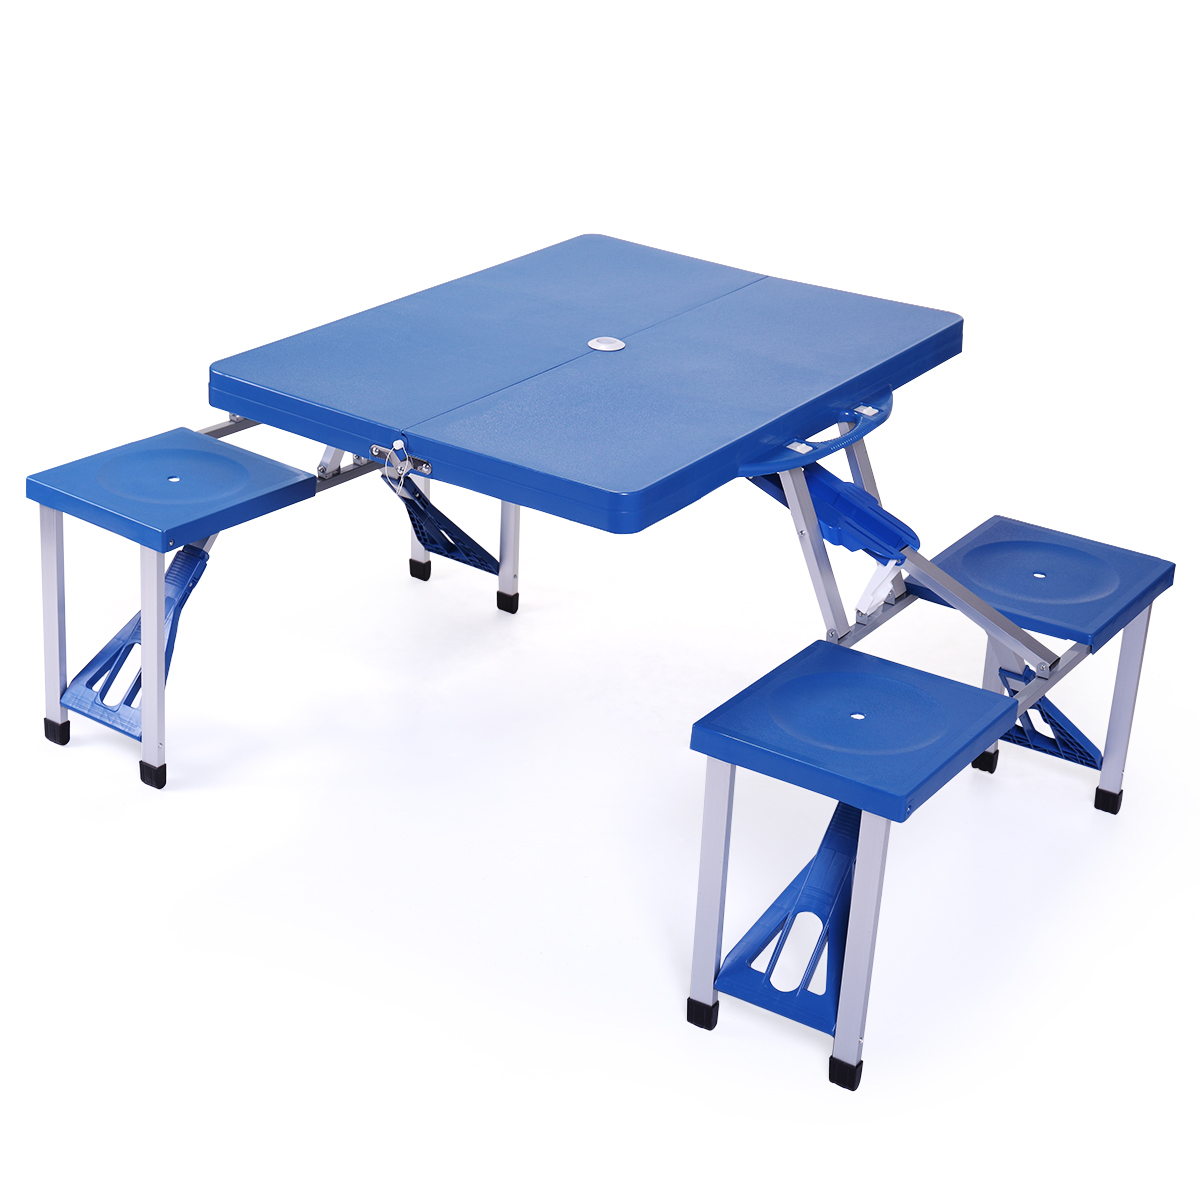 Folding Compact Table Outdoor Camp Kids Picnic Party Table Set  Suitcase Blue